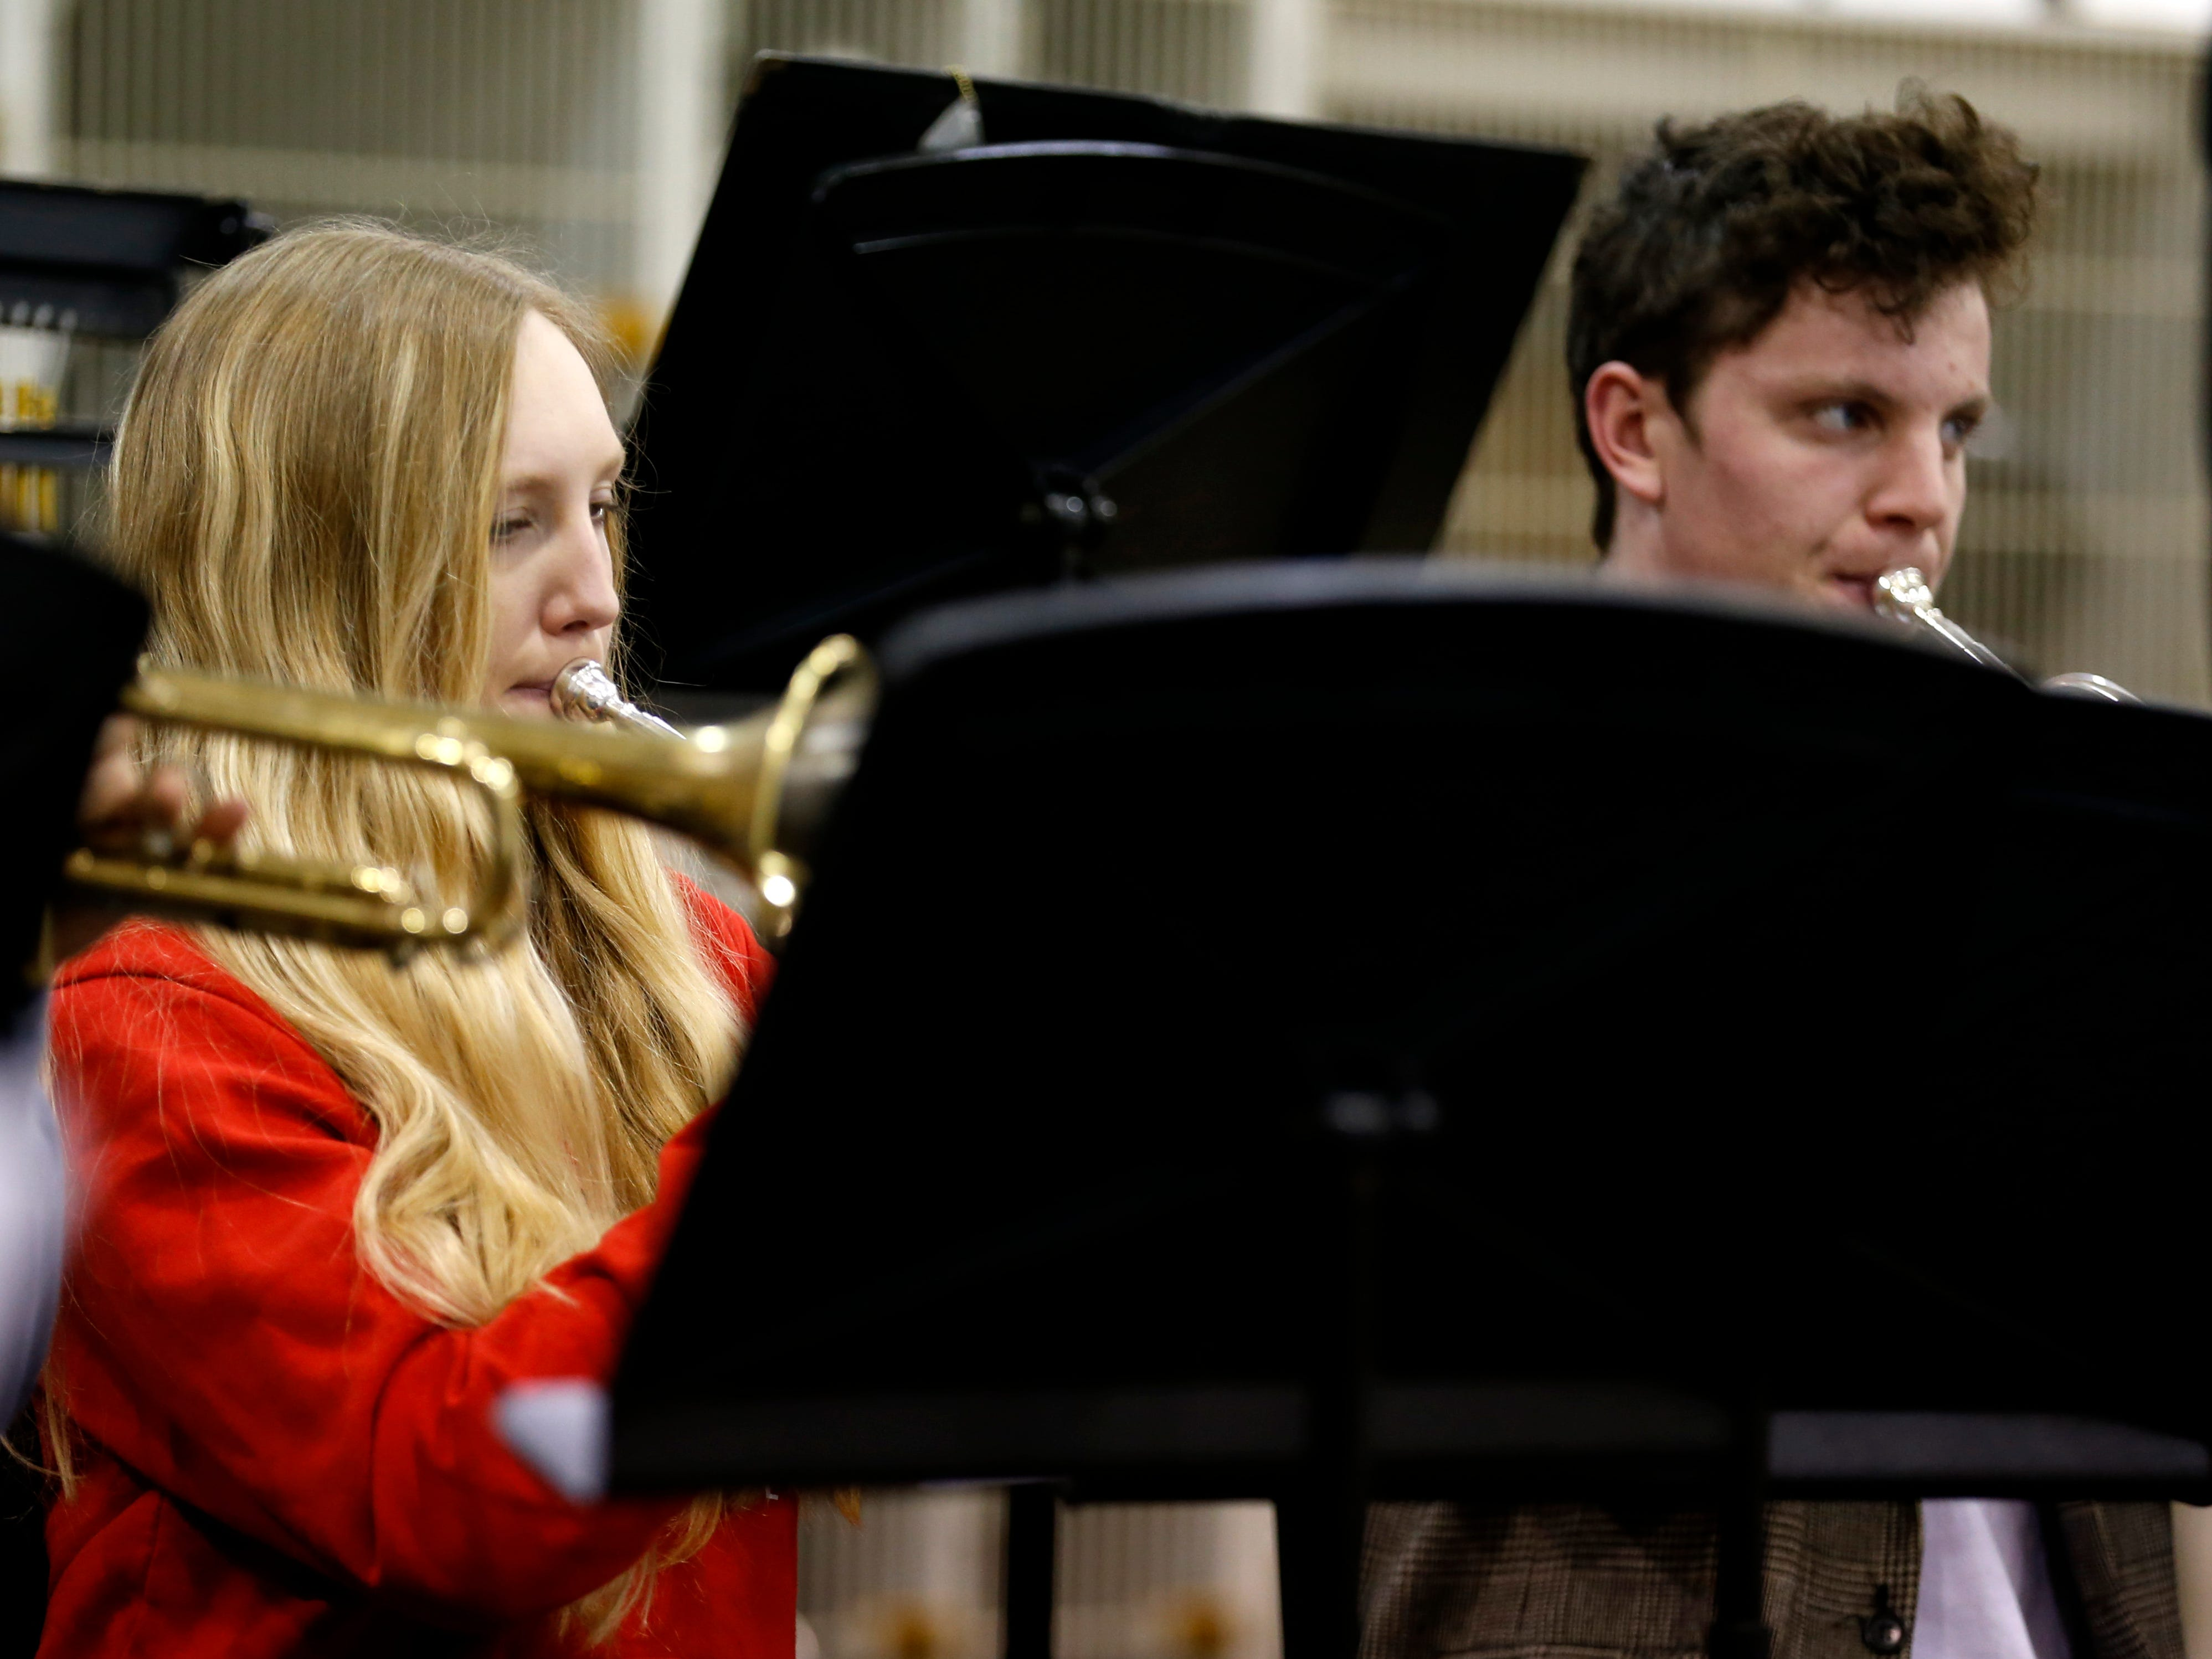 Britany Oliver, a Central High School senior, plays the trumpet during band practice on Wednesday, Jan. 16, 2018. The 53-student wind ensemble will be a featured at the annual state conference of the Missouri Music Educators Association next week.